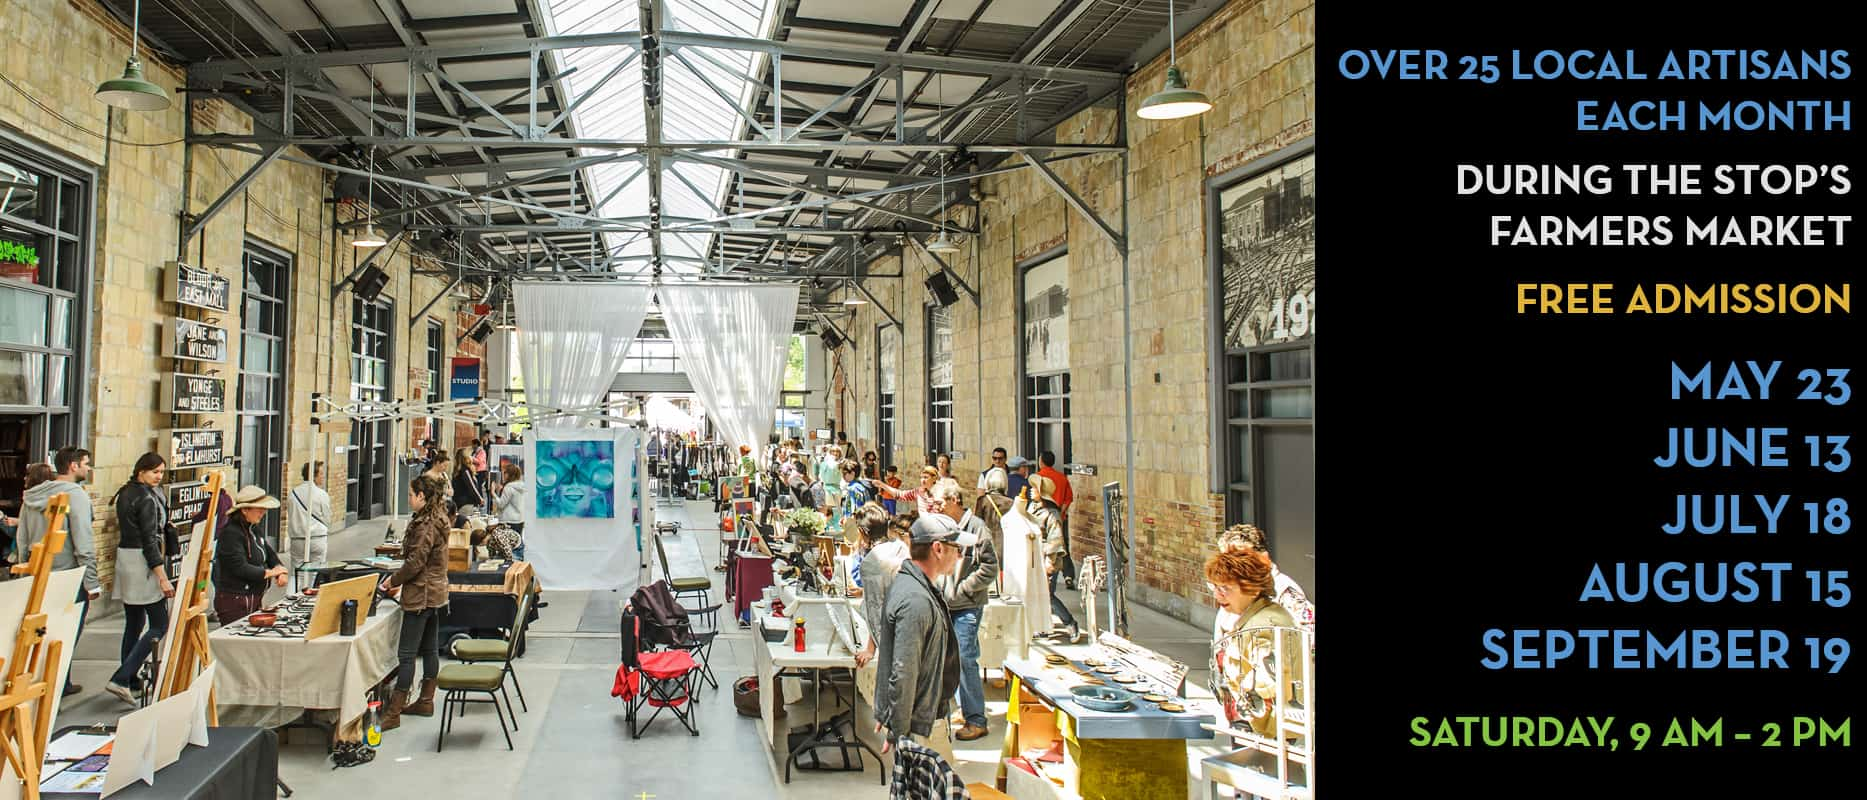 Our Pick of the Week: Barns Art Market